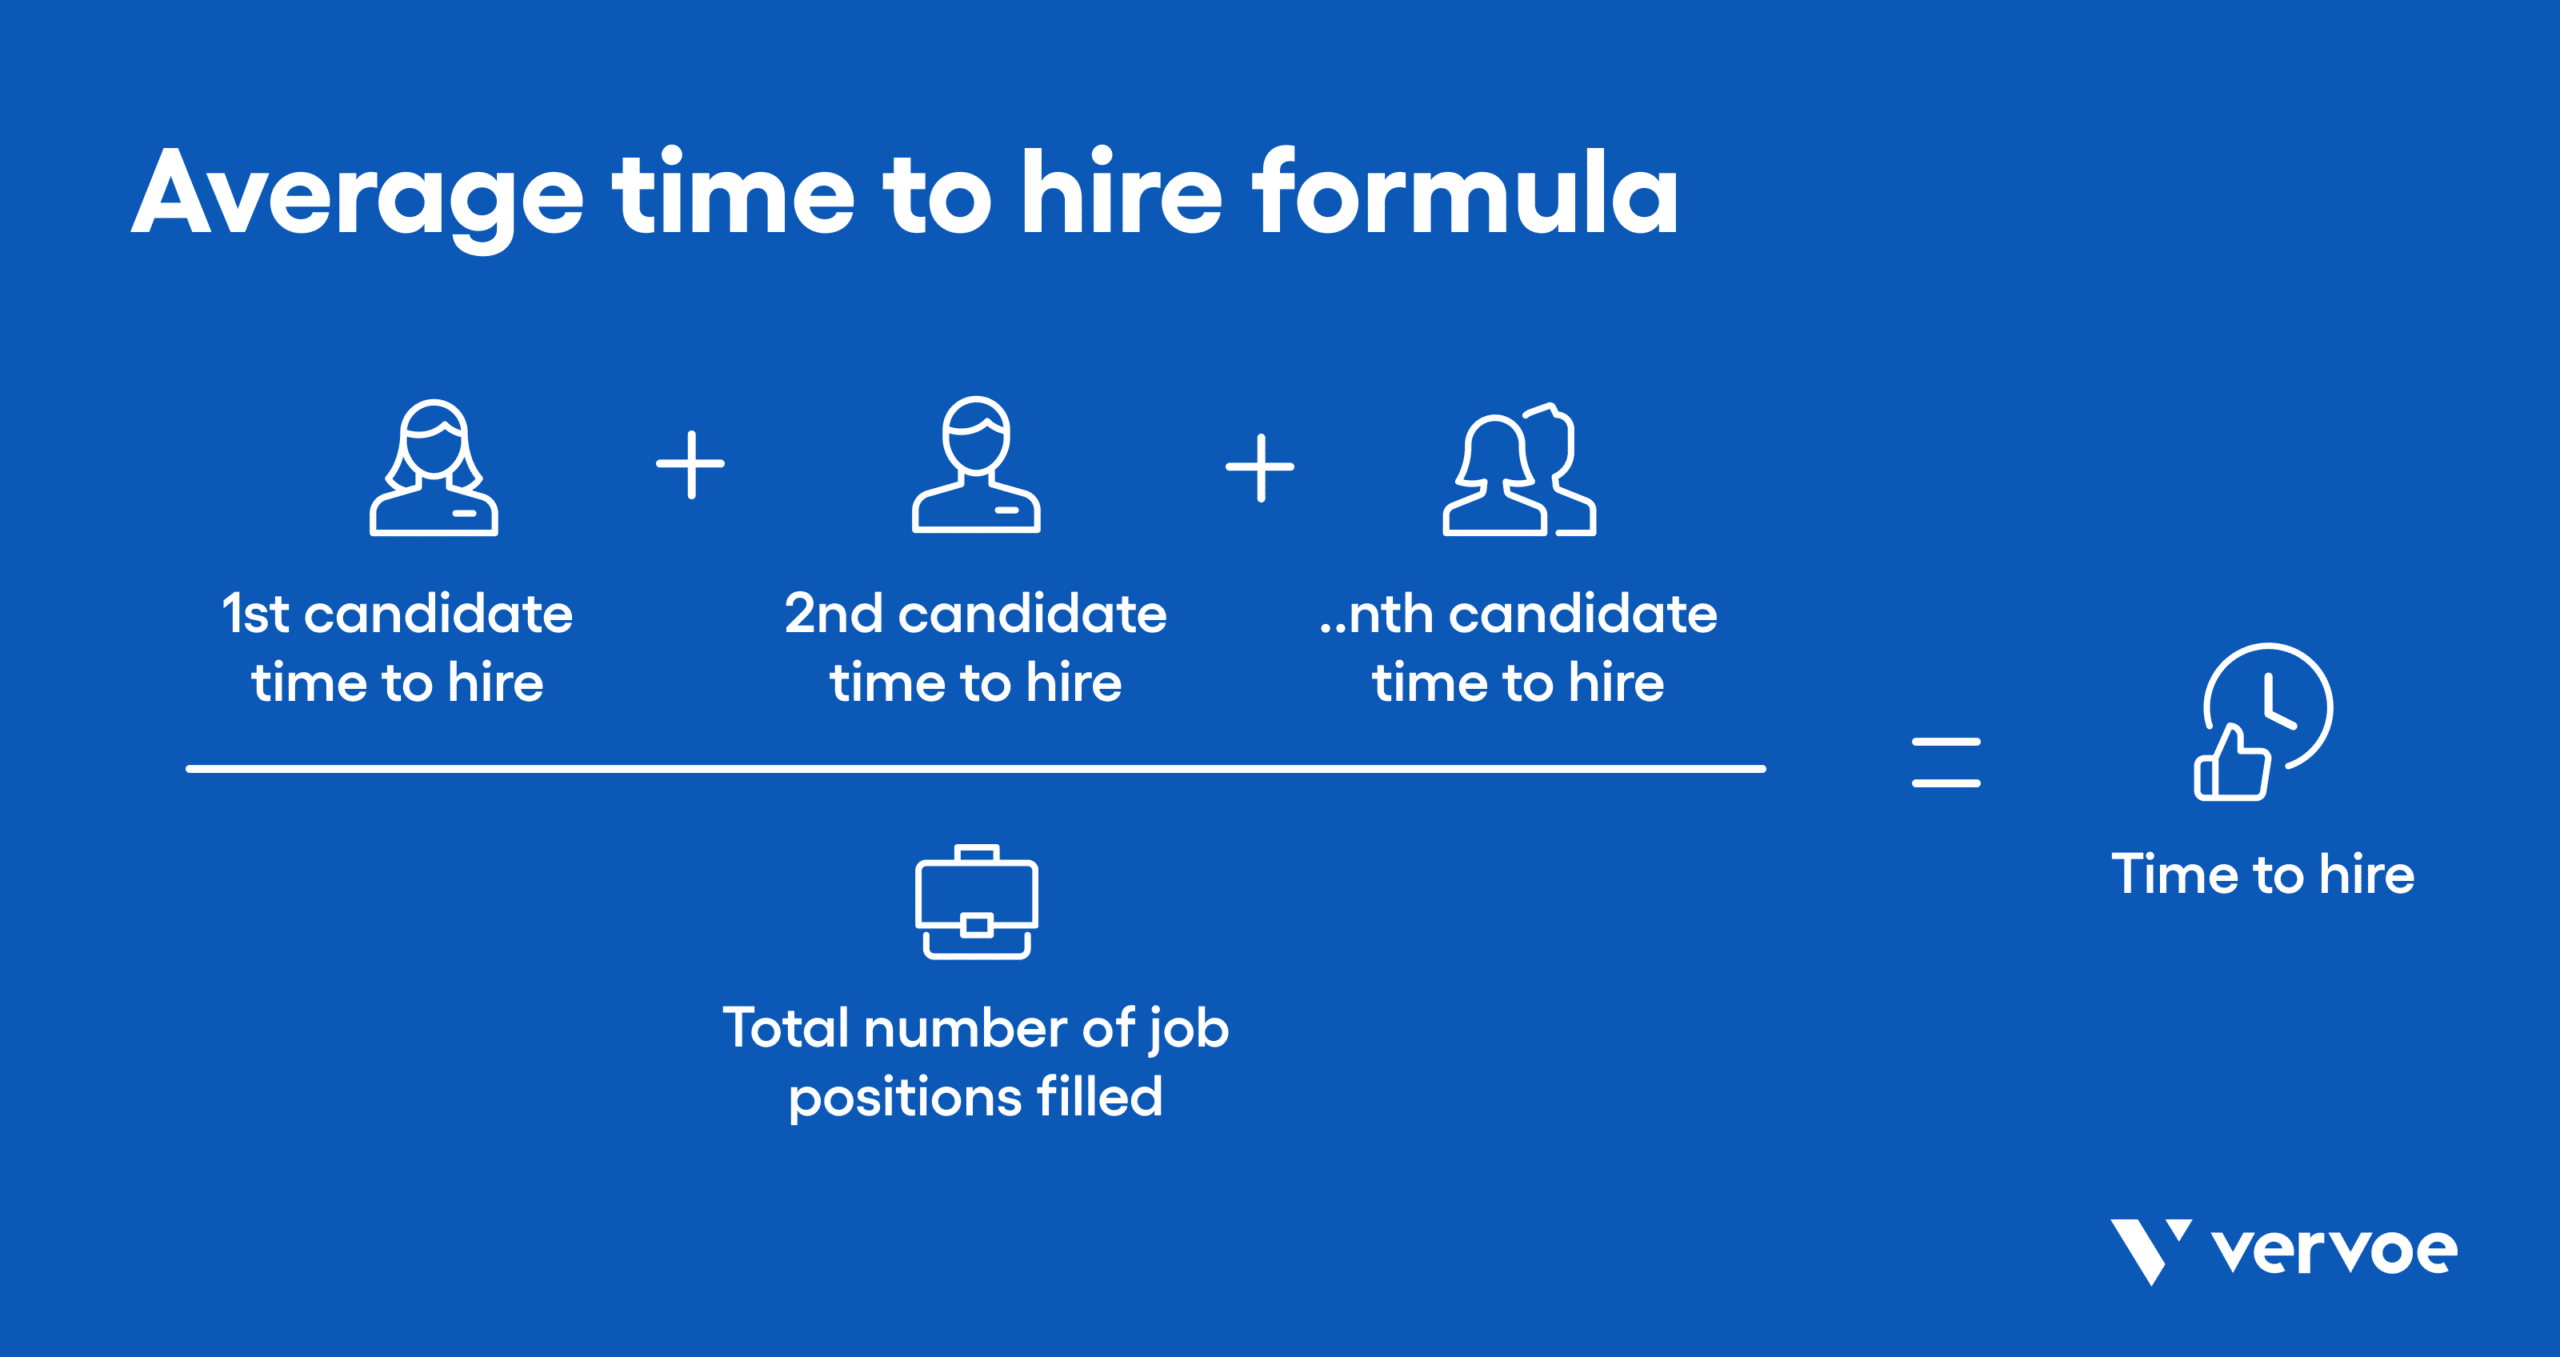 Infographic showing formula to calculate average time to hire